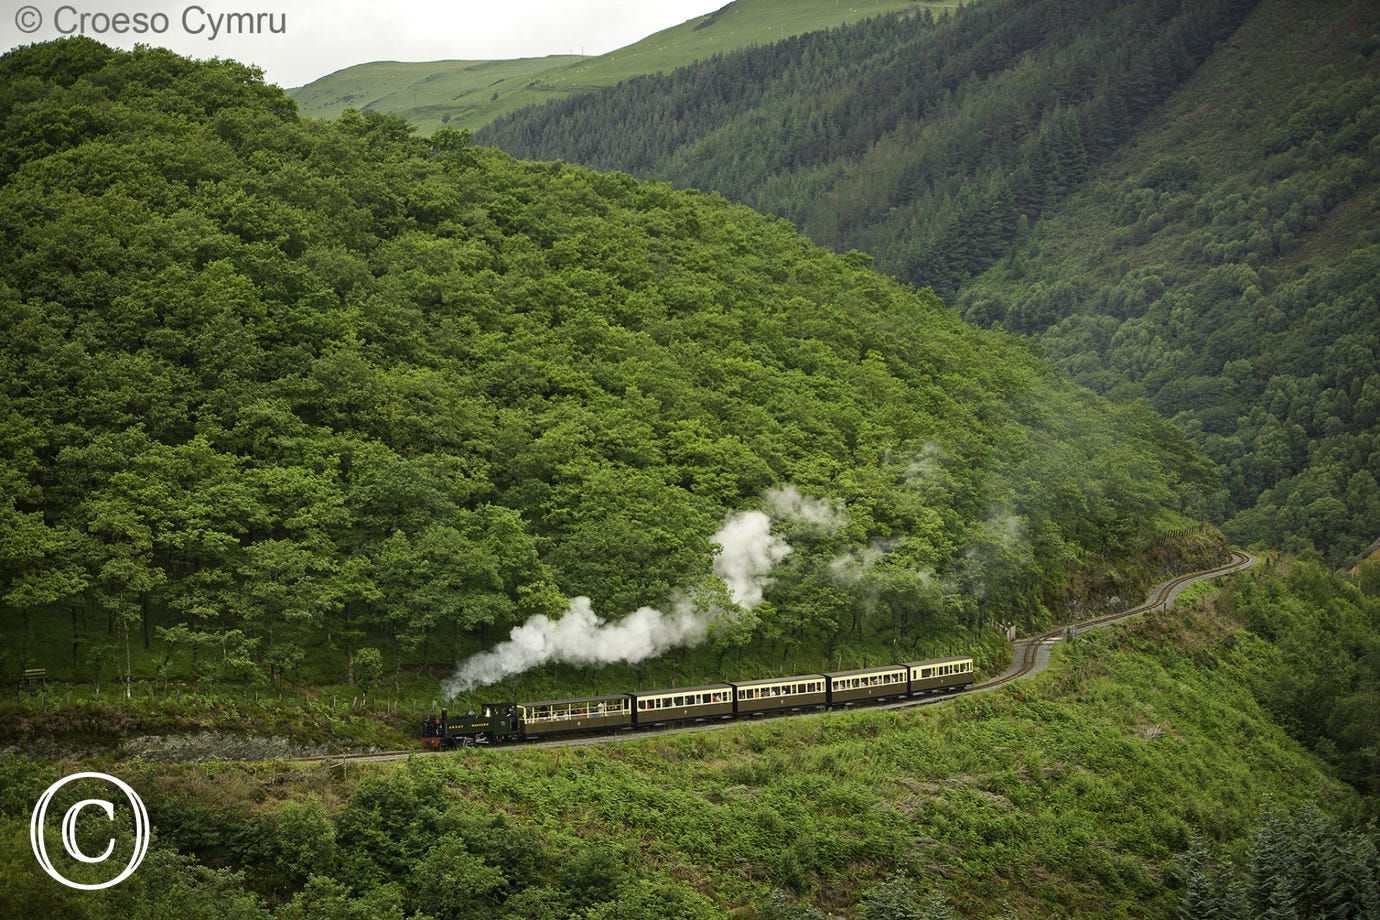 Scenic steam train ride from Aberystwyth to Devils Bridge